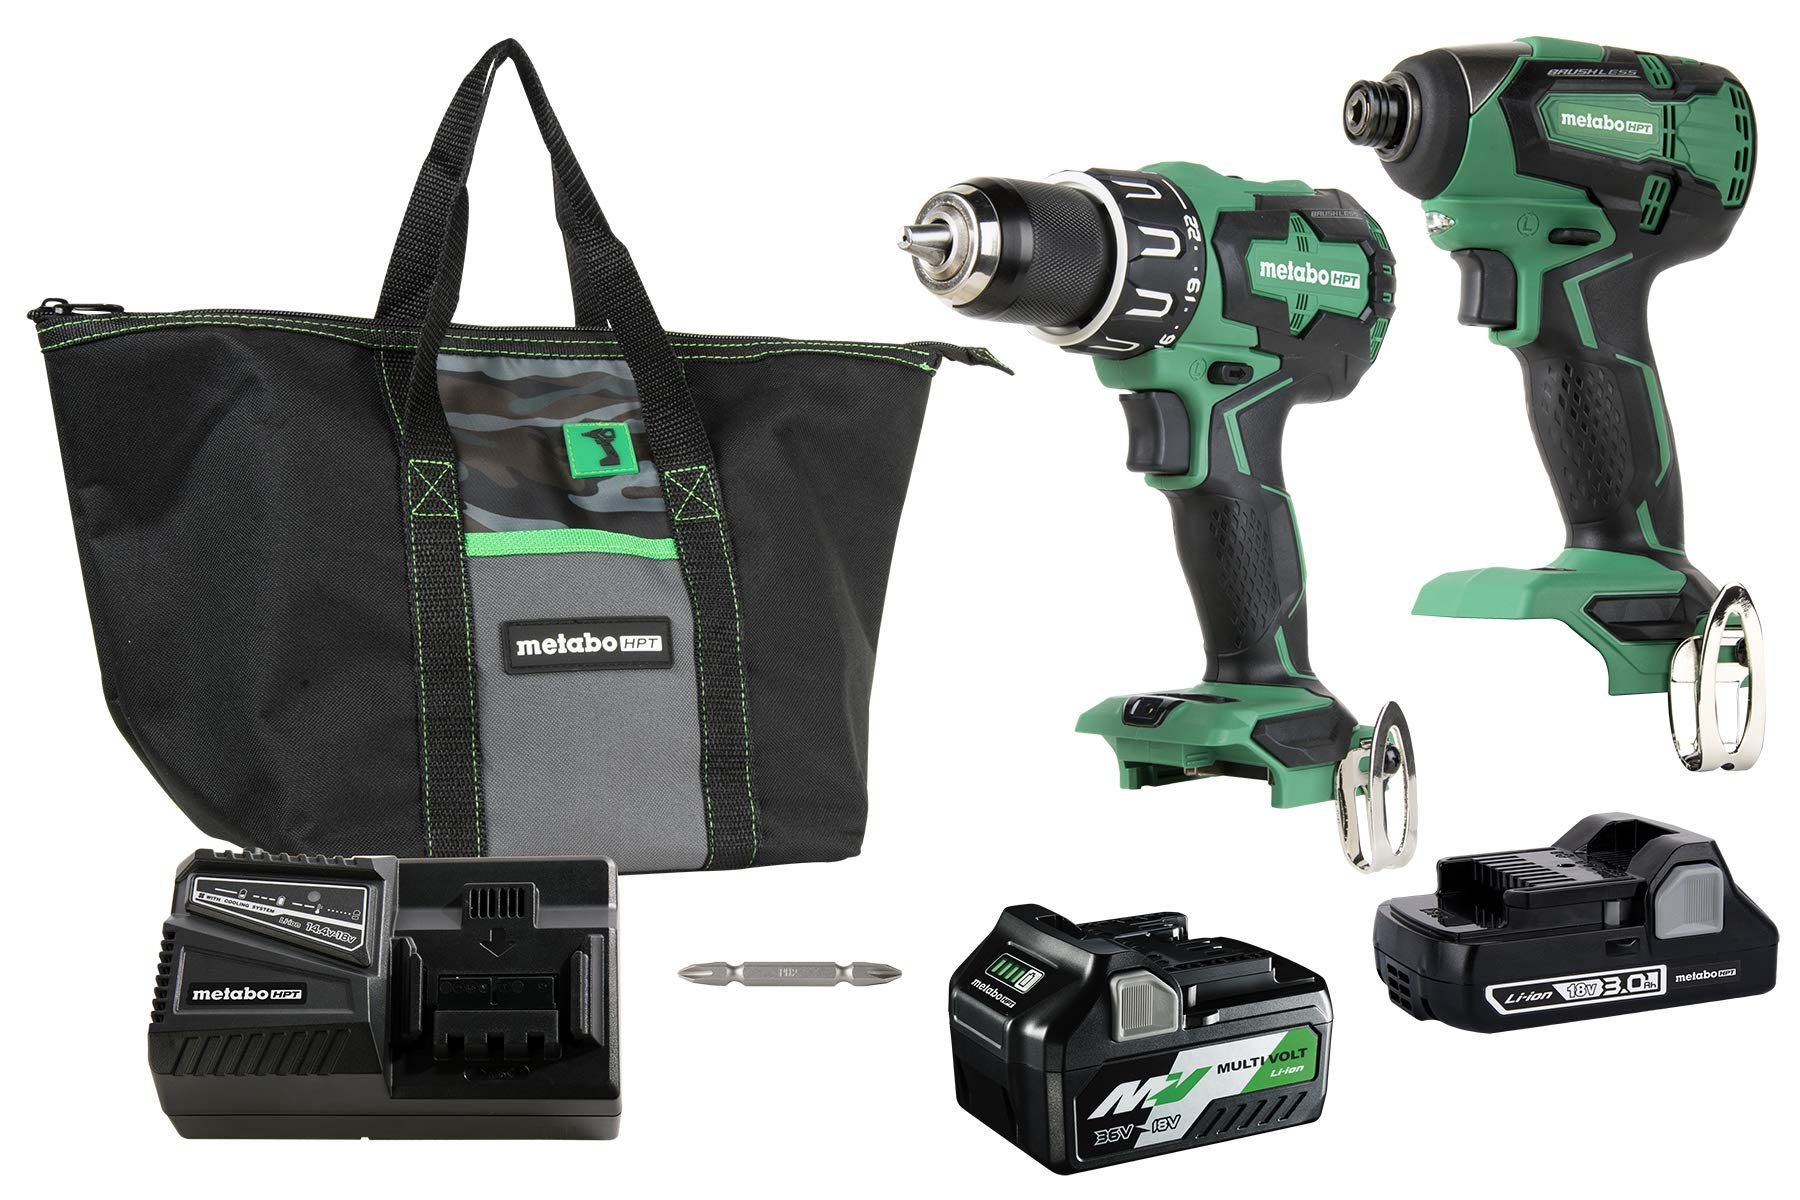 Metabo HPT KC18DBFL2T 18V Cordless Brushless Hammer Drill and Impact Driver Combo Kit, Includes Two Batteries, 1-36V/18V MultiVolt 5.0 Ah and 1-18V Compact 3.0 Ah Battery, Lifetime Tool Warranty